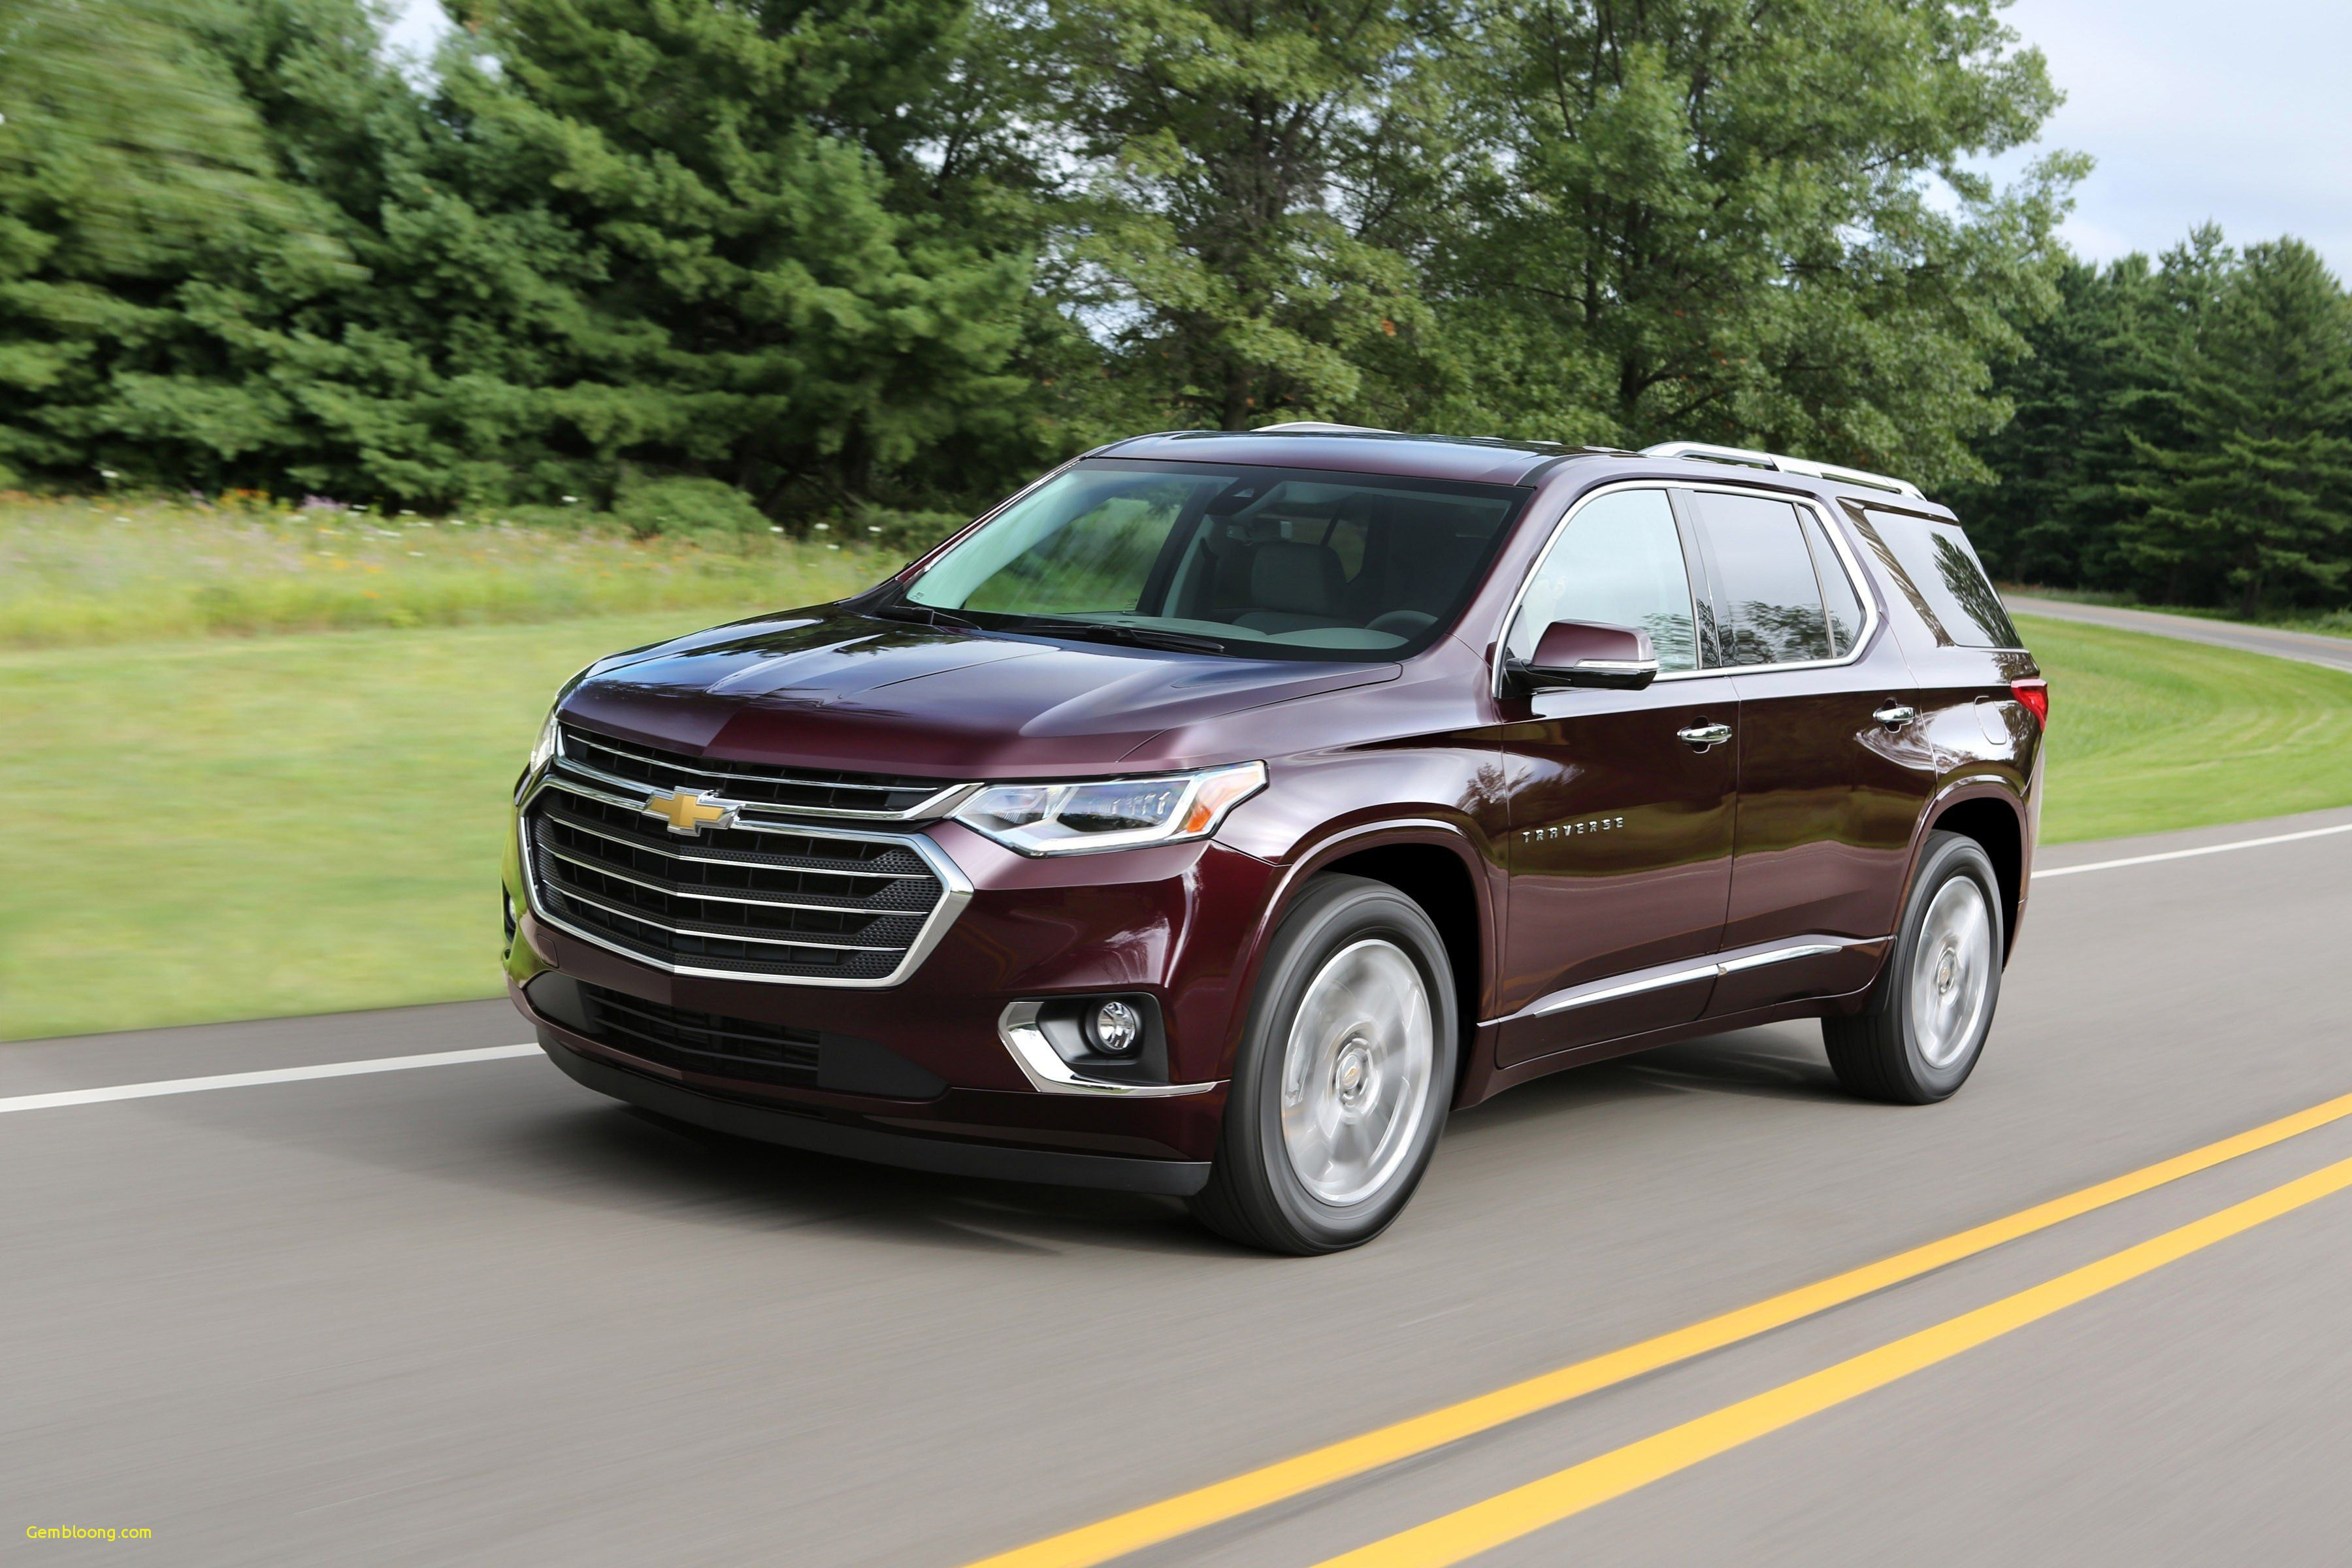 2019 Chevy Traverse Check More At Http Www New Cars Club 2017 02 07 2019 Chevy Traverse Chevrolet Traverse Chevrolet Captiva Chevy Trailblazer